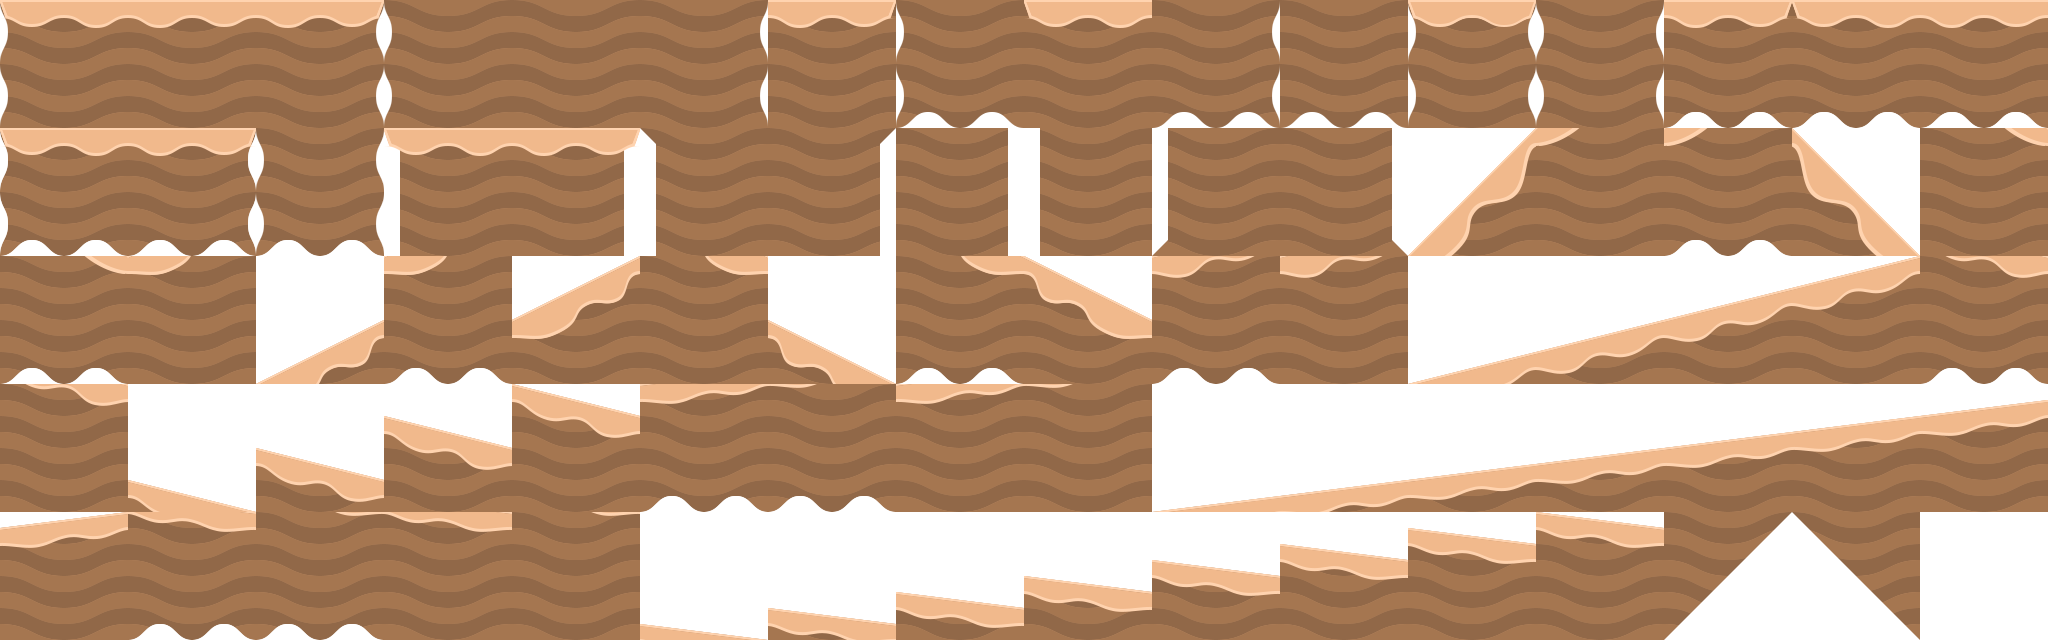 Desert Platformer Tiles With Slopes Opengameart Org